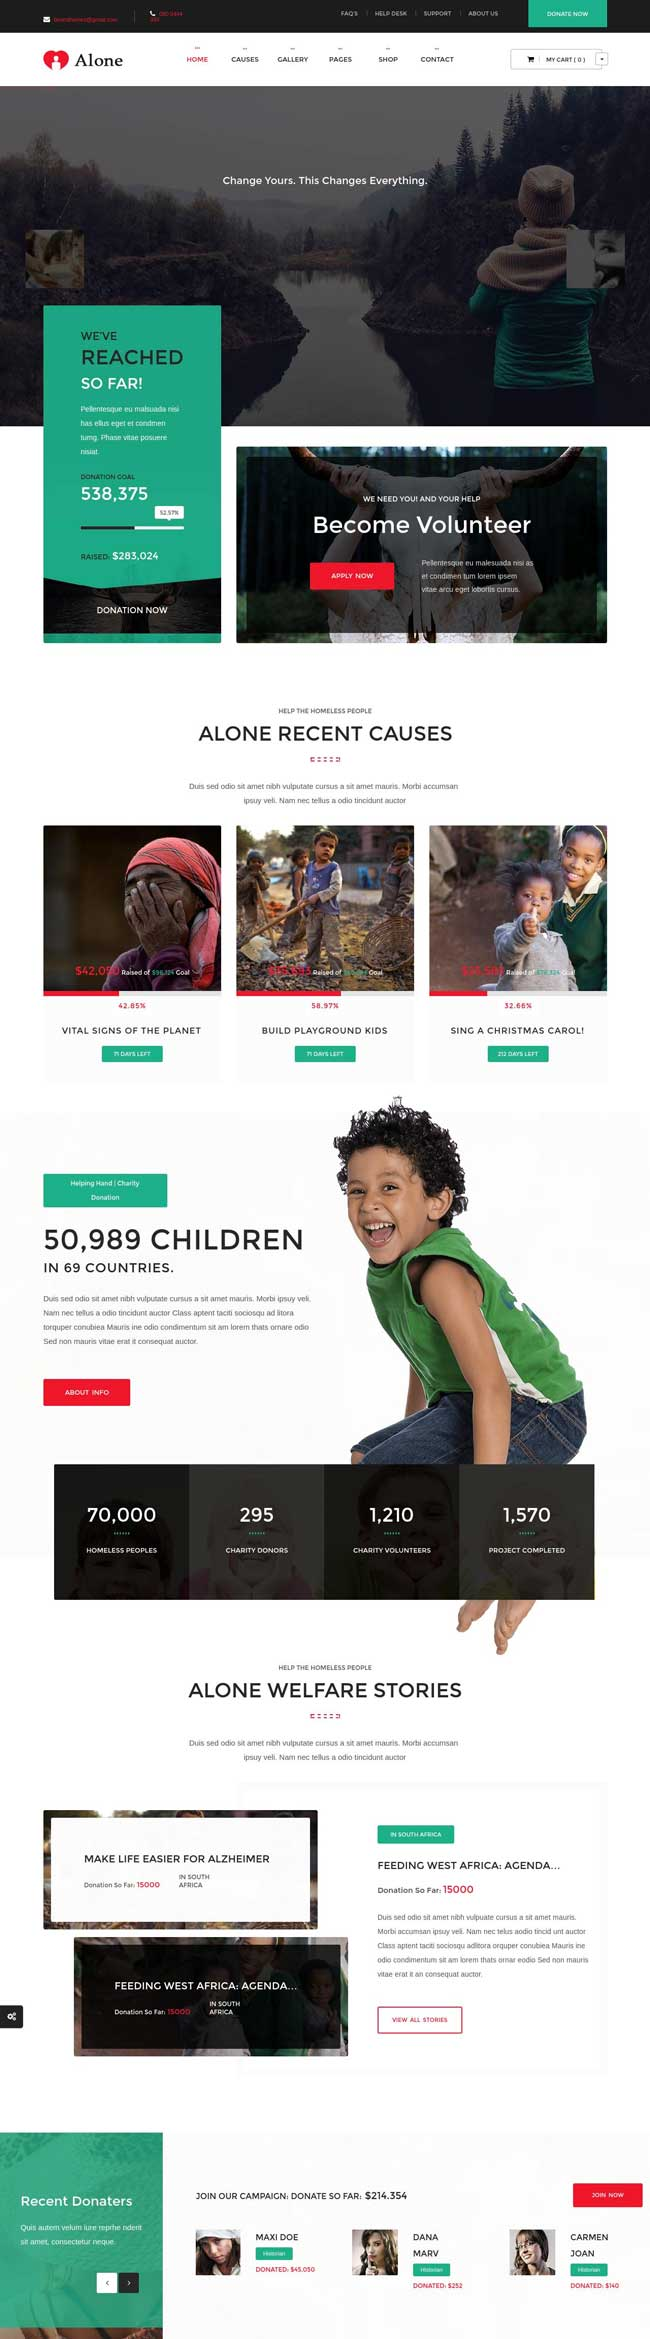 Alone-Charity-Multipurpose-Non-profit-WordPress-Theme